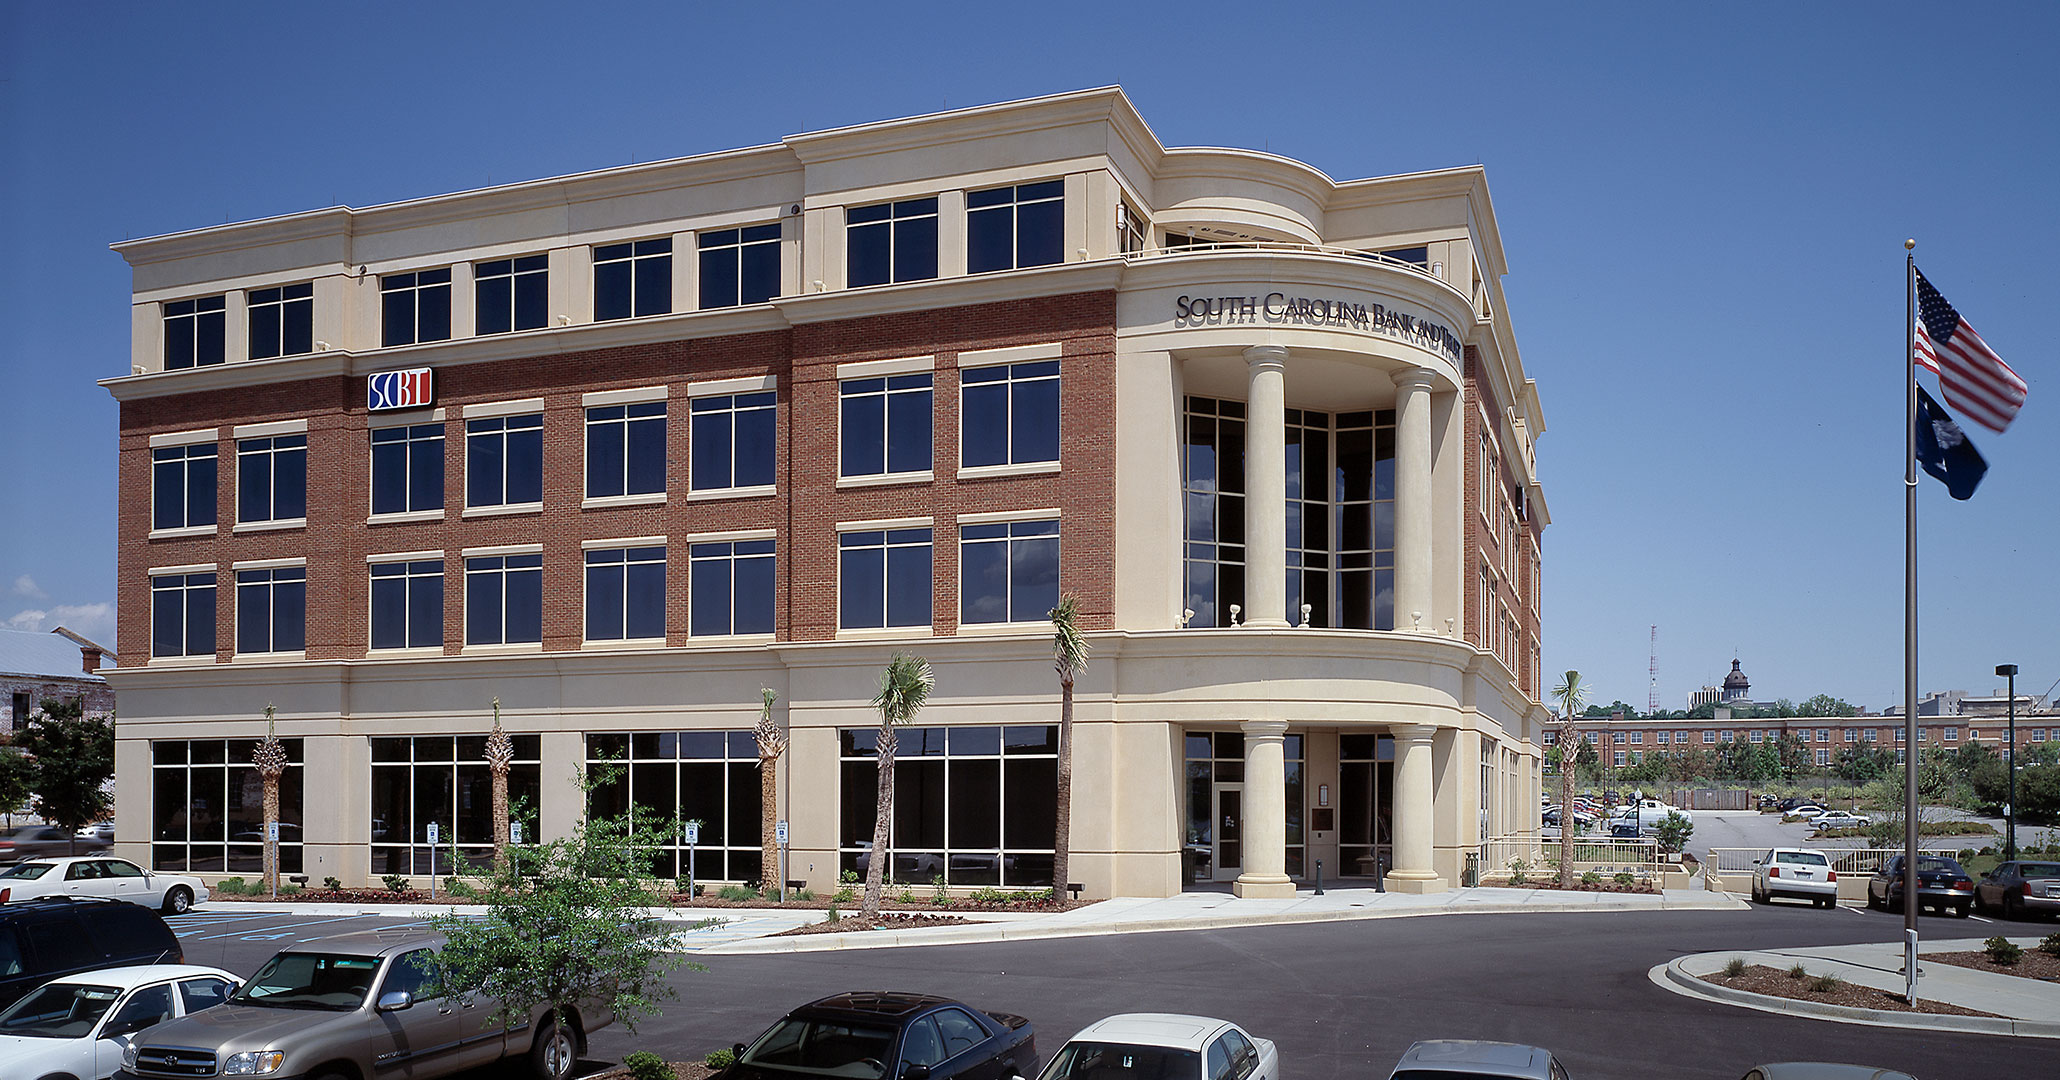 Boudreaux architects worked with South State Bank to provide high-end interior design services for their workplace.